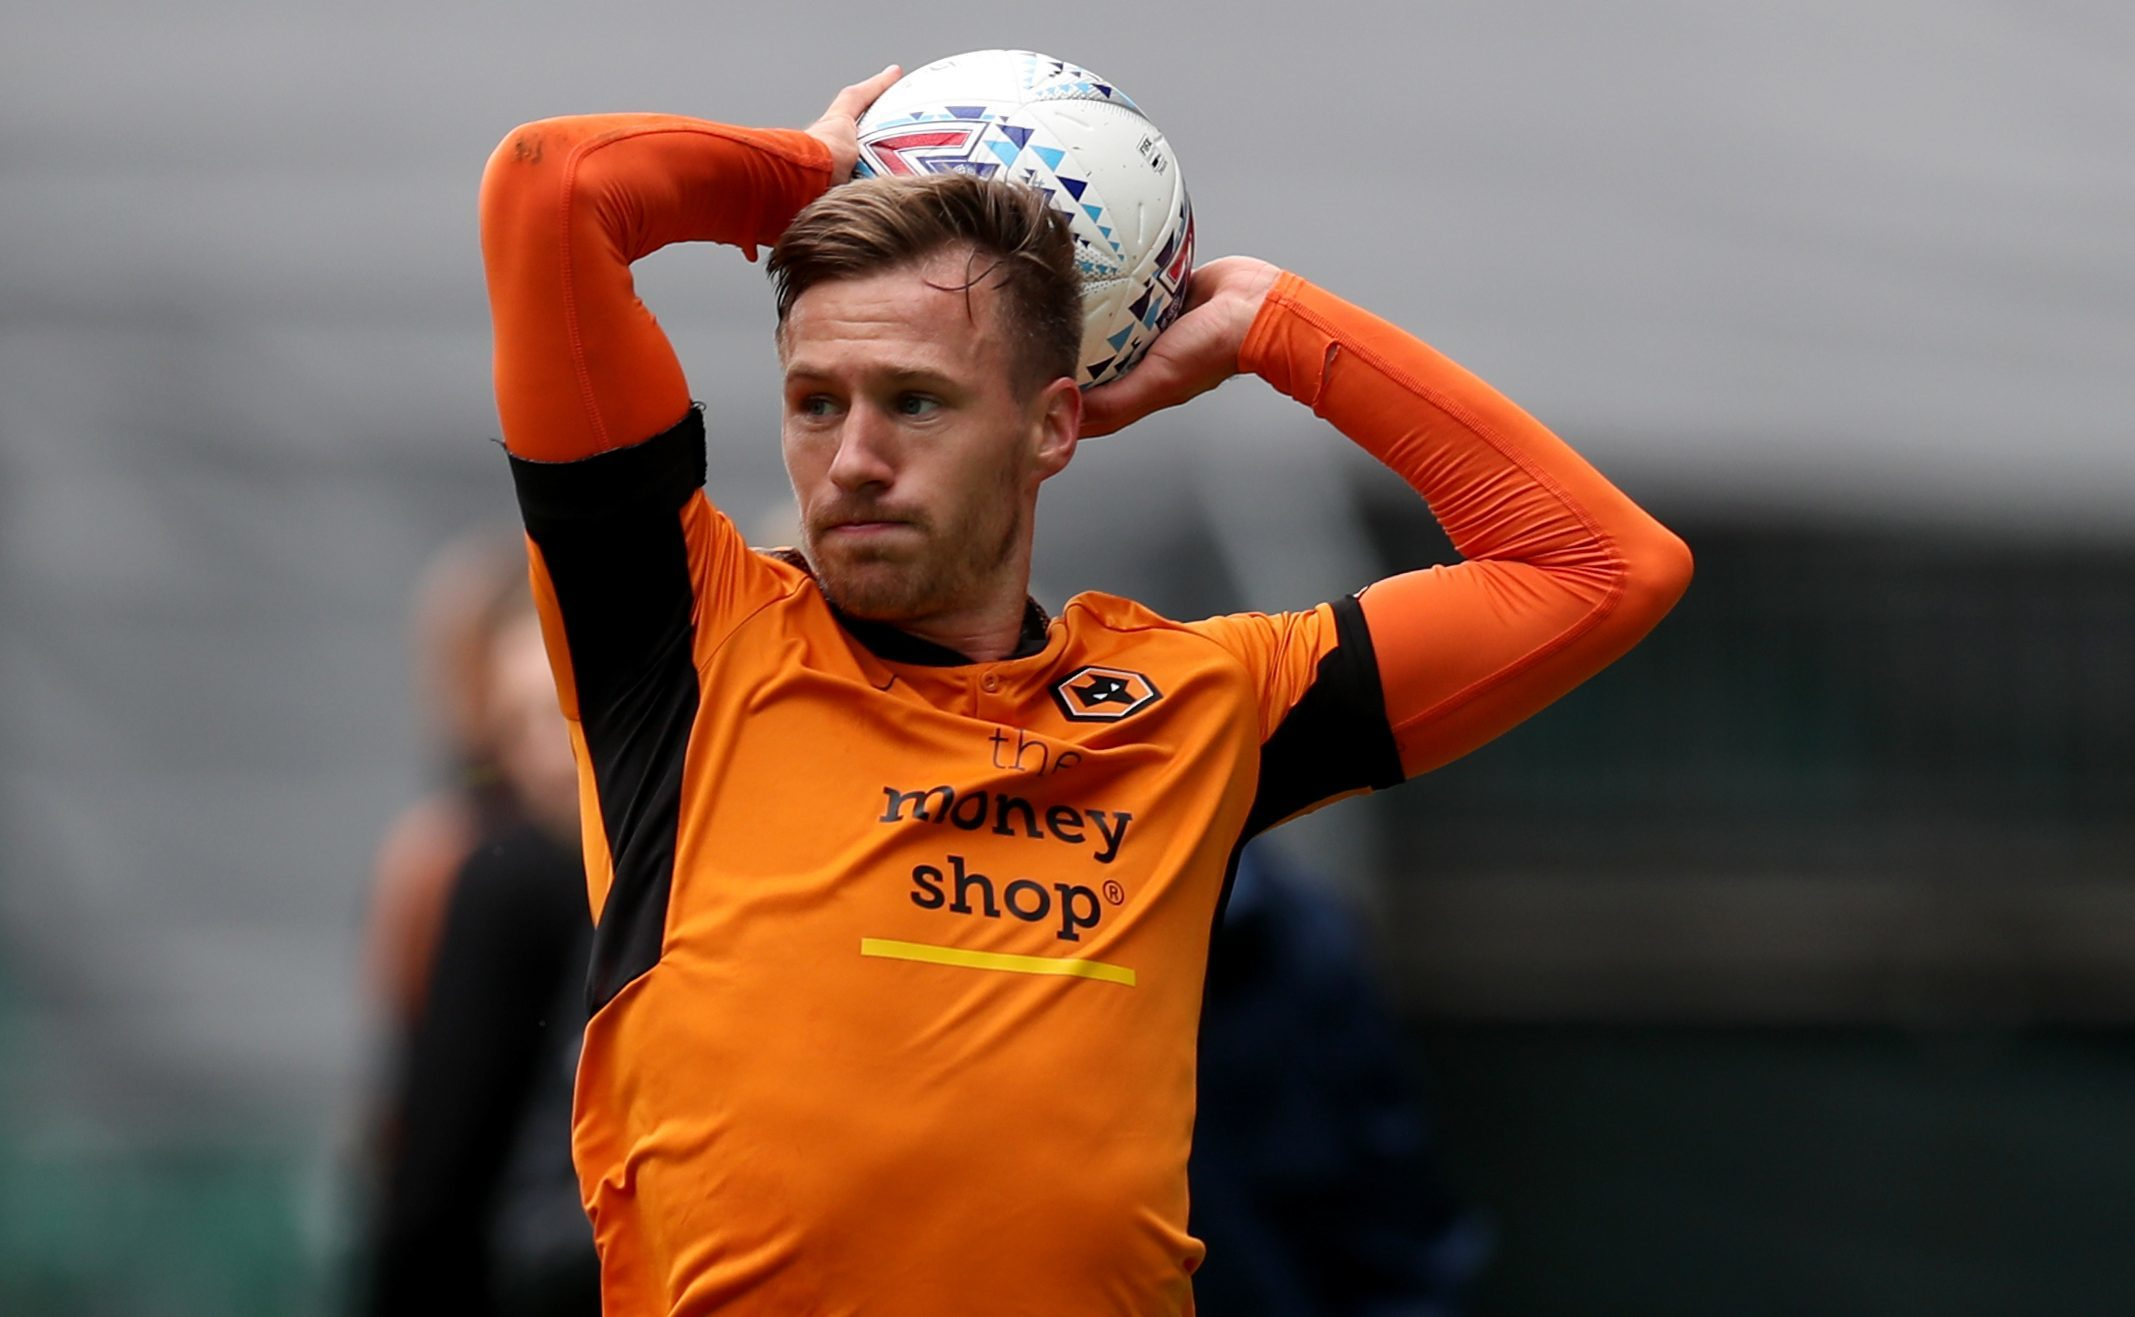 Barry Douglas in action for Wolves (Chris Radburn/PA Wire)